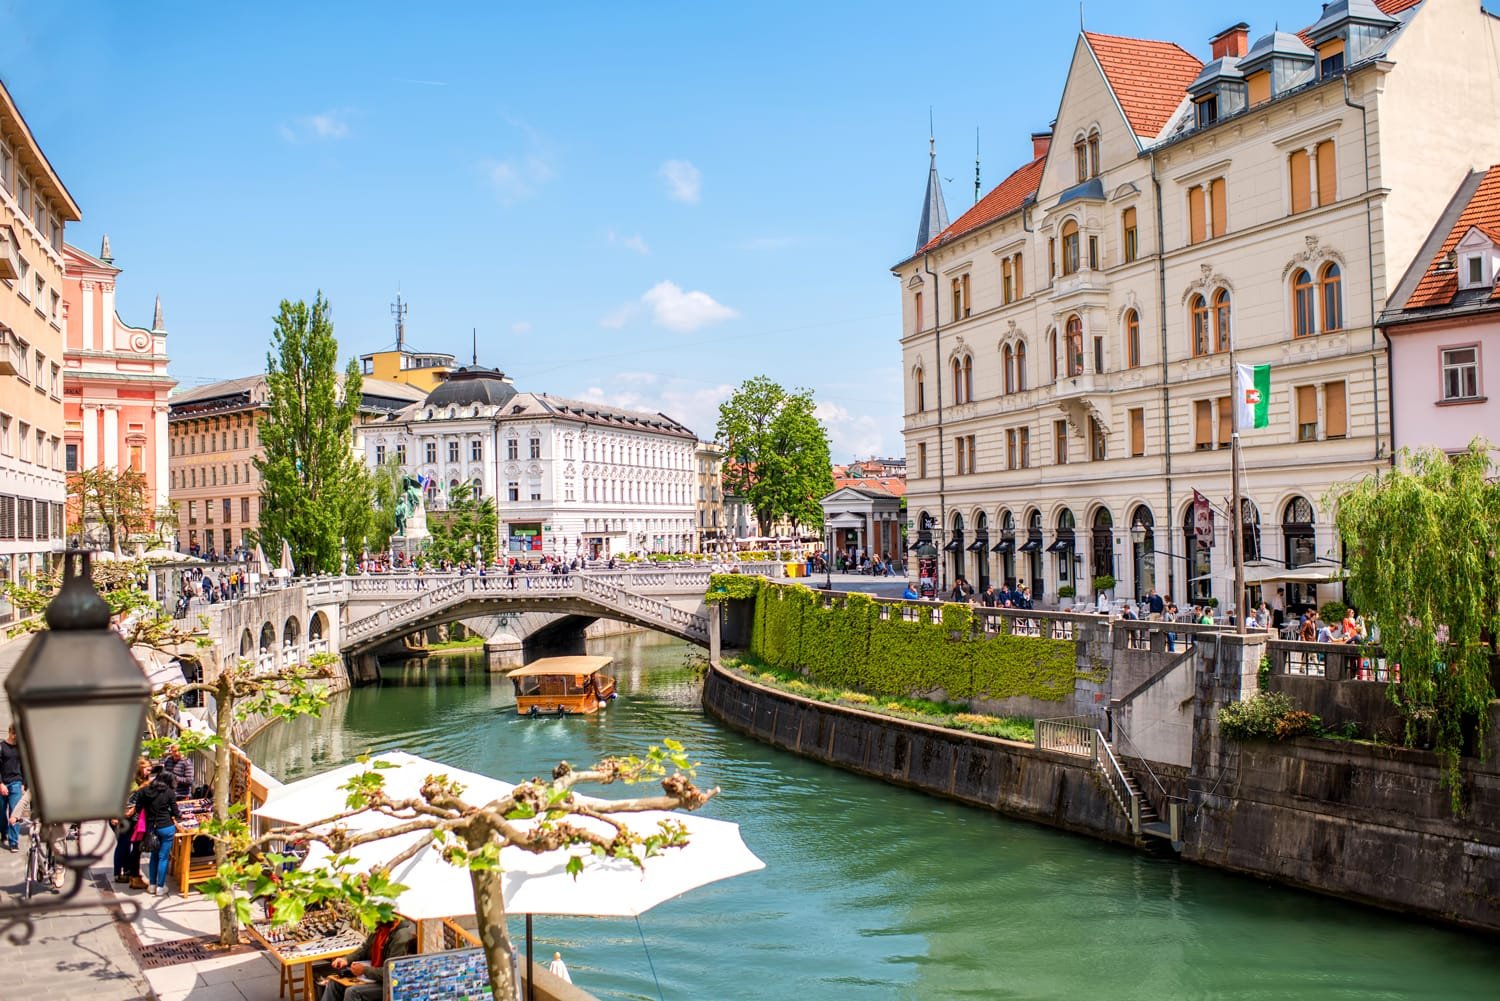 Cityscape view on Ljubljanica river canal in Ljubljana old town. Ljubljana is the capital of Slovenia and famous european tourist destination.